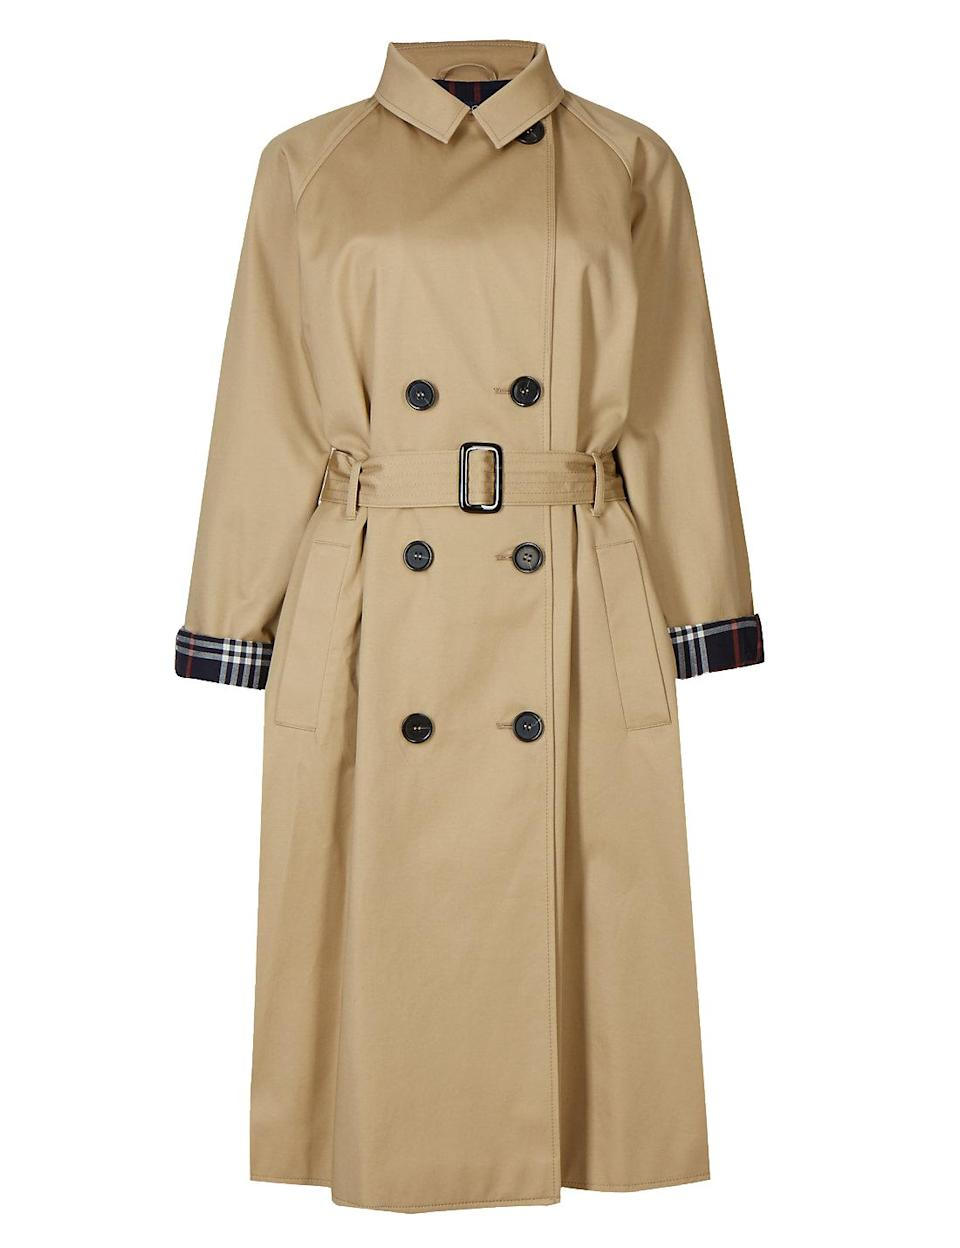 """<p>You're looking at the most sought after trench of the season. We'll be teaming ours with a navy polo neck, raw-hem jeans and patent ankle boots. Bring on the rain!<br><br><em><a rel=""""nofollow noopener"""" href=""""http://www.marksandspencer.com/pure-cotton-trench-coat-with-stormwear/p/p60100750?image=sd_01_t49_3311_sp_x_ec_90&color=sandstone&prevpage=plp&pdpredirect&source=affwindow&extid=af_a_Content_73846_Telegraph.co.uk&comgp=73846&cvosrc=affiliate.aw.73846&awc=1402_1505383125_b96ba7152c107c242398563ffa1e780e"""" target=""""_blank"""" data-ylk=""""slk:Marks and Spencer"""" class=""""link rapid-noclick-resp"""">Marks and Spencer</a>, £79</em> </p>"""